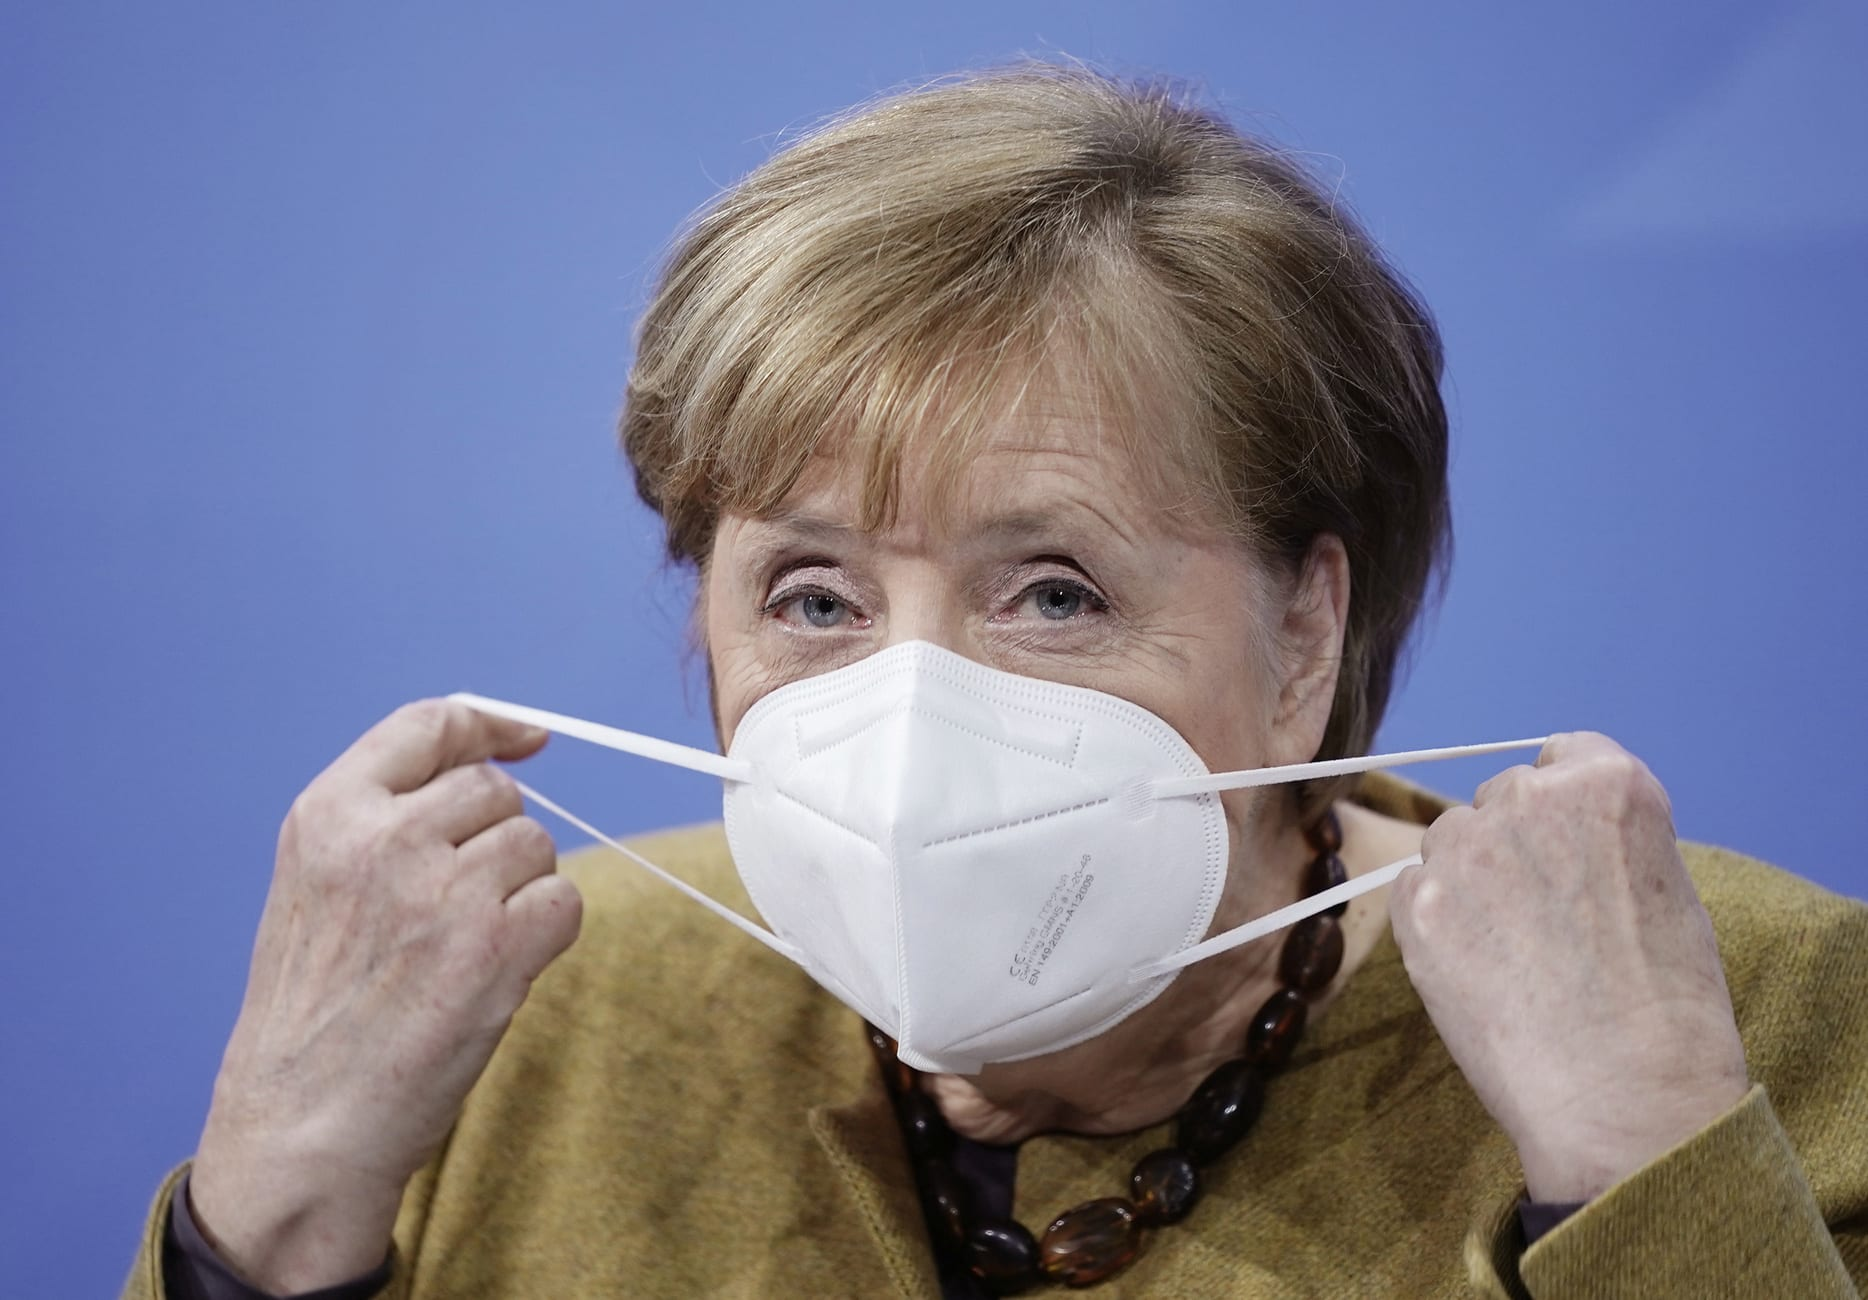 German Chancellor Angela Merkel wears a protective mask as she arrives for a news conference after talks with state leaders at the Chancellery in Berlin, Germany January 5, 2021.     Michel Kappeler/Pool via REUTERS